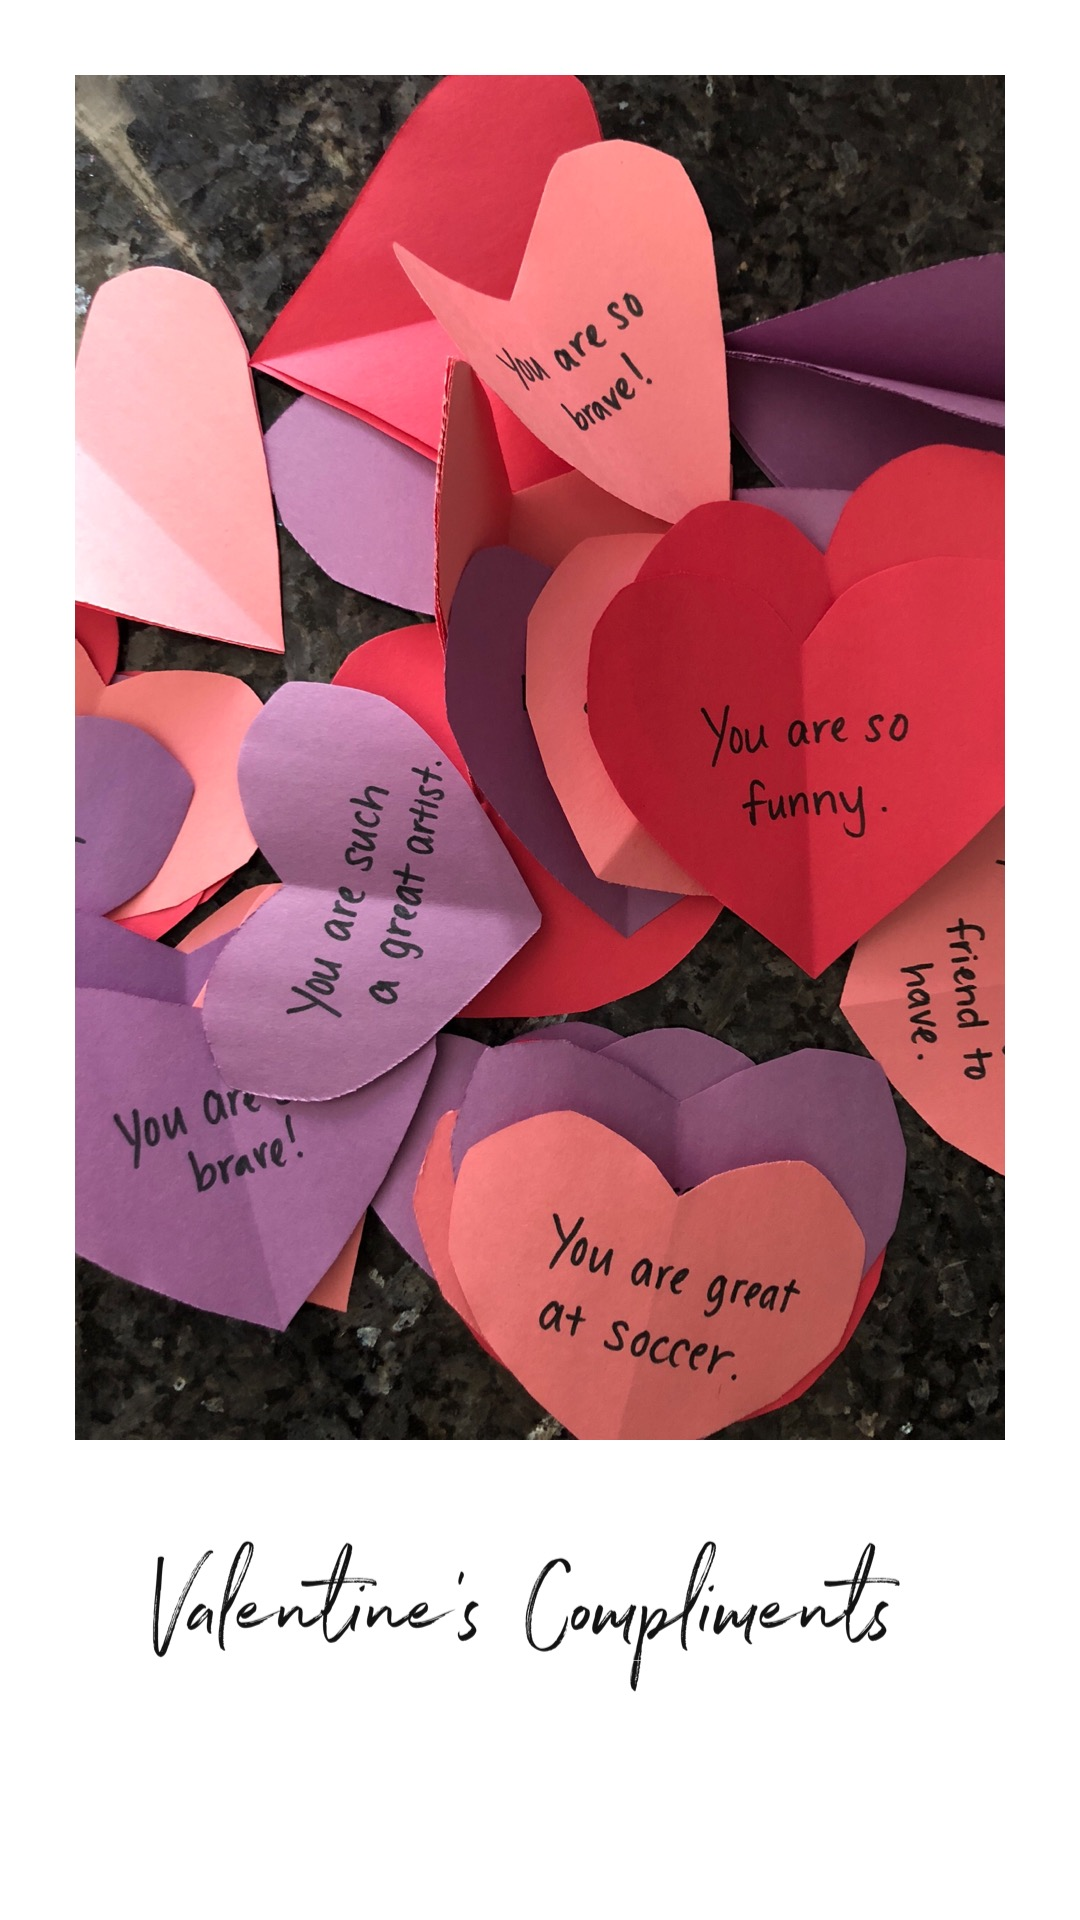 Paper hearts with words written on them - compliments for kids for Valentine's Day